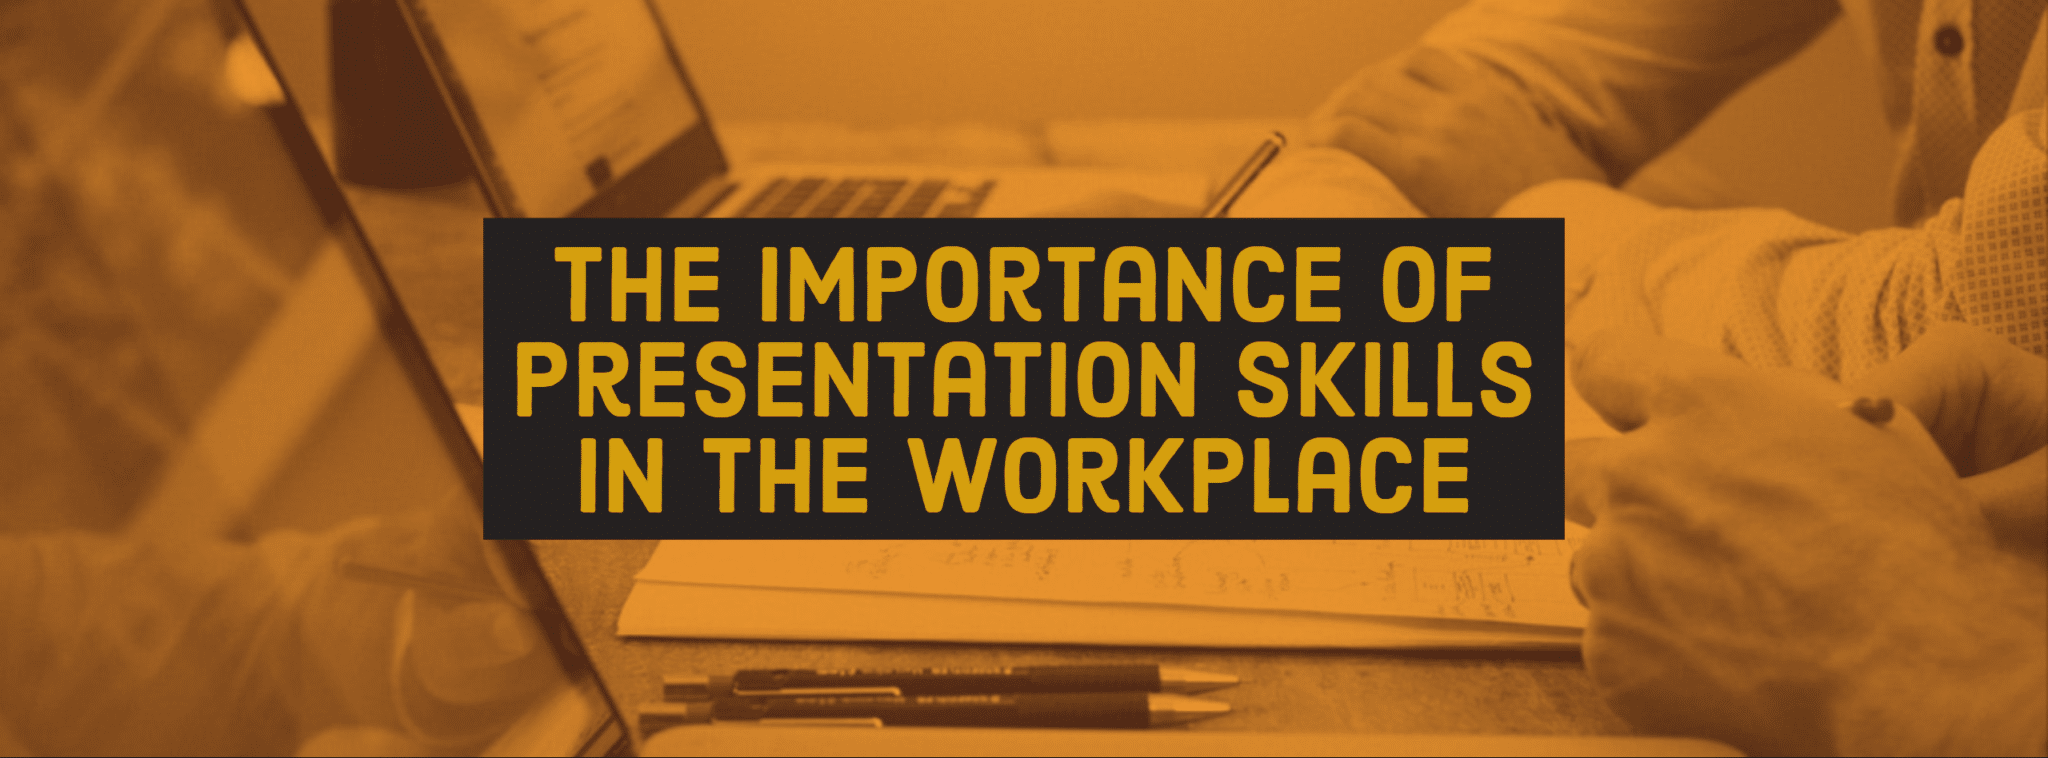 https://www.fearlesspresentations.com/wp-content/uploads/2019/08/The-Importance-of-Presentation-Skills-in-the-Workplace.png